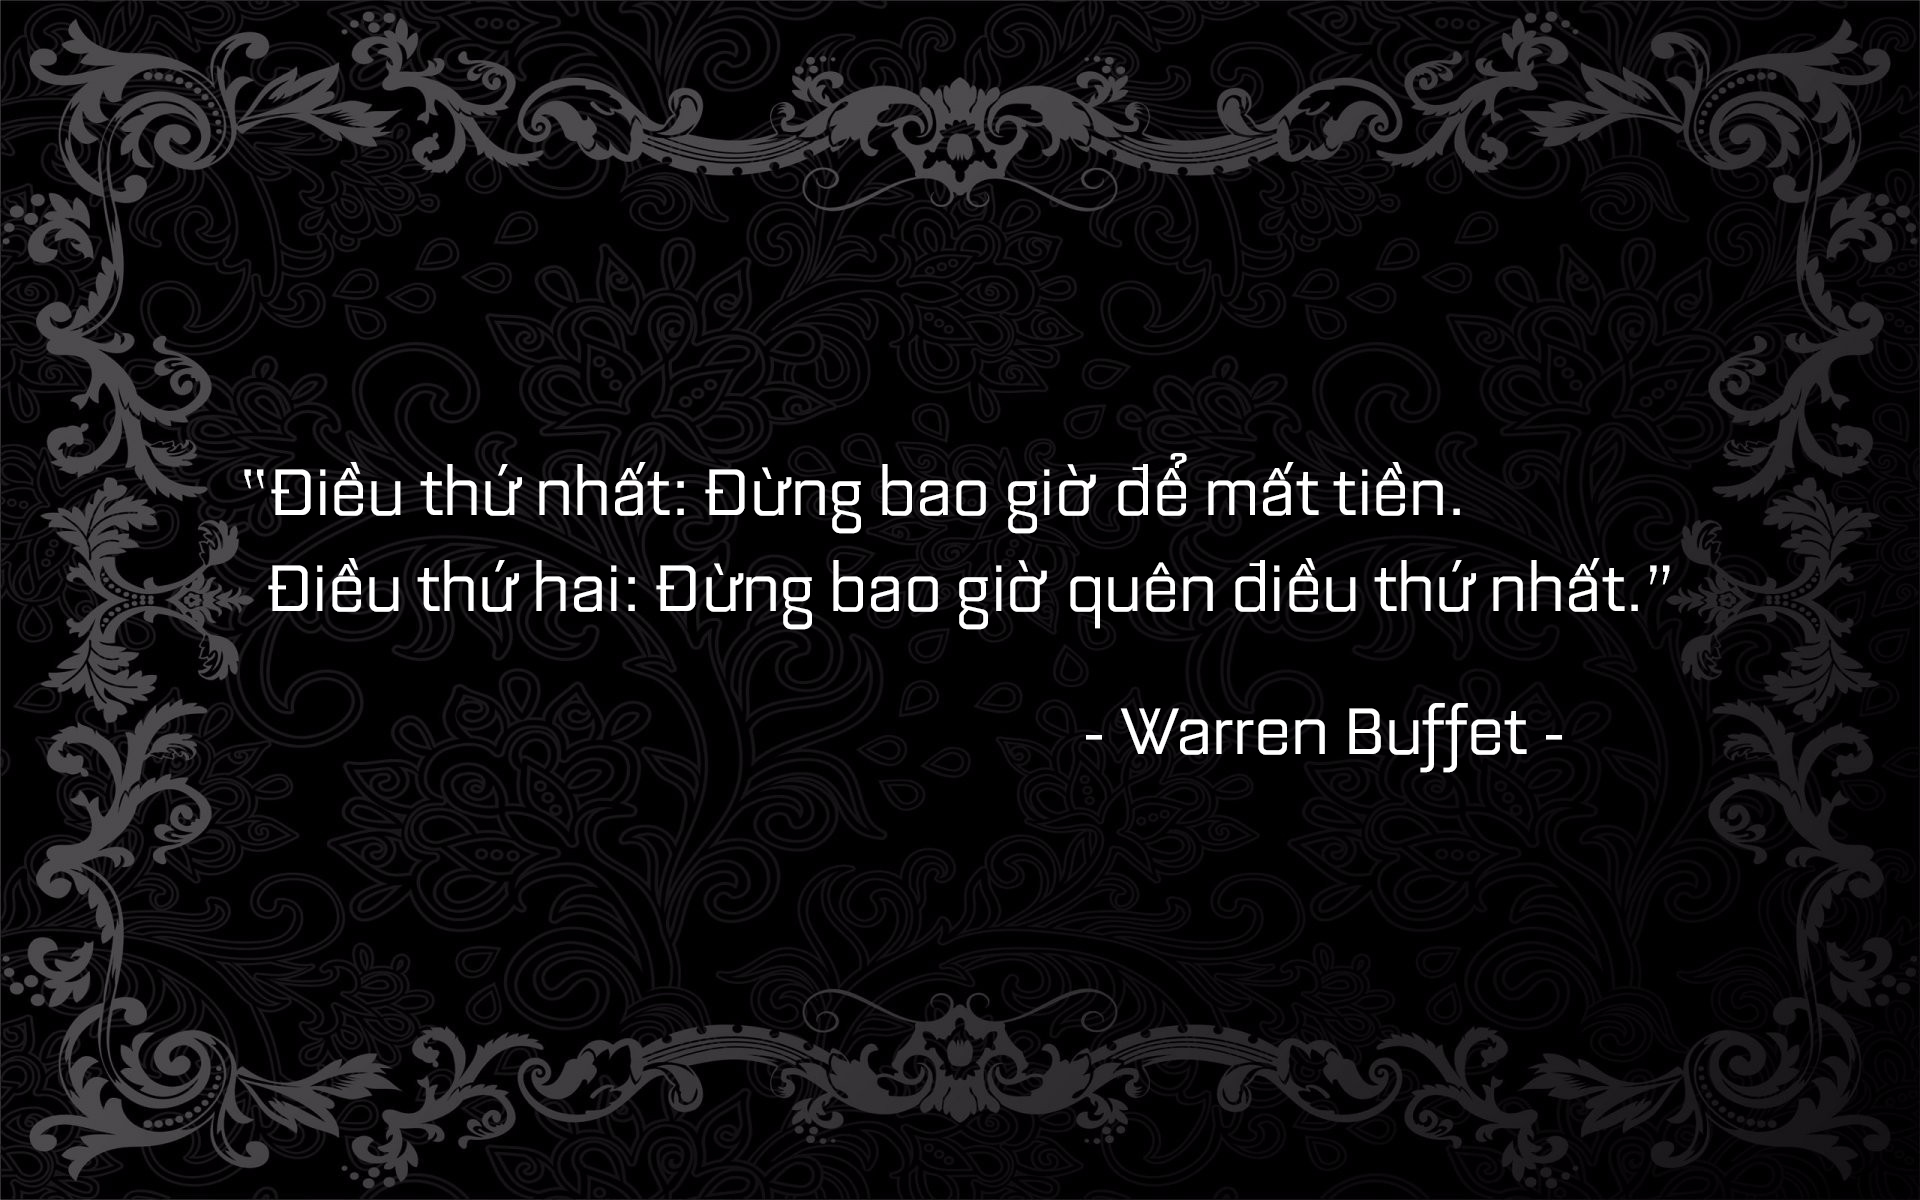 buffet quote 1.